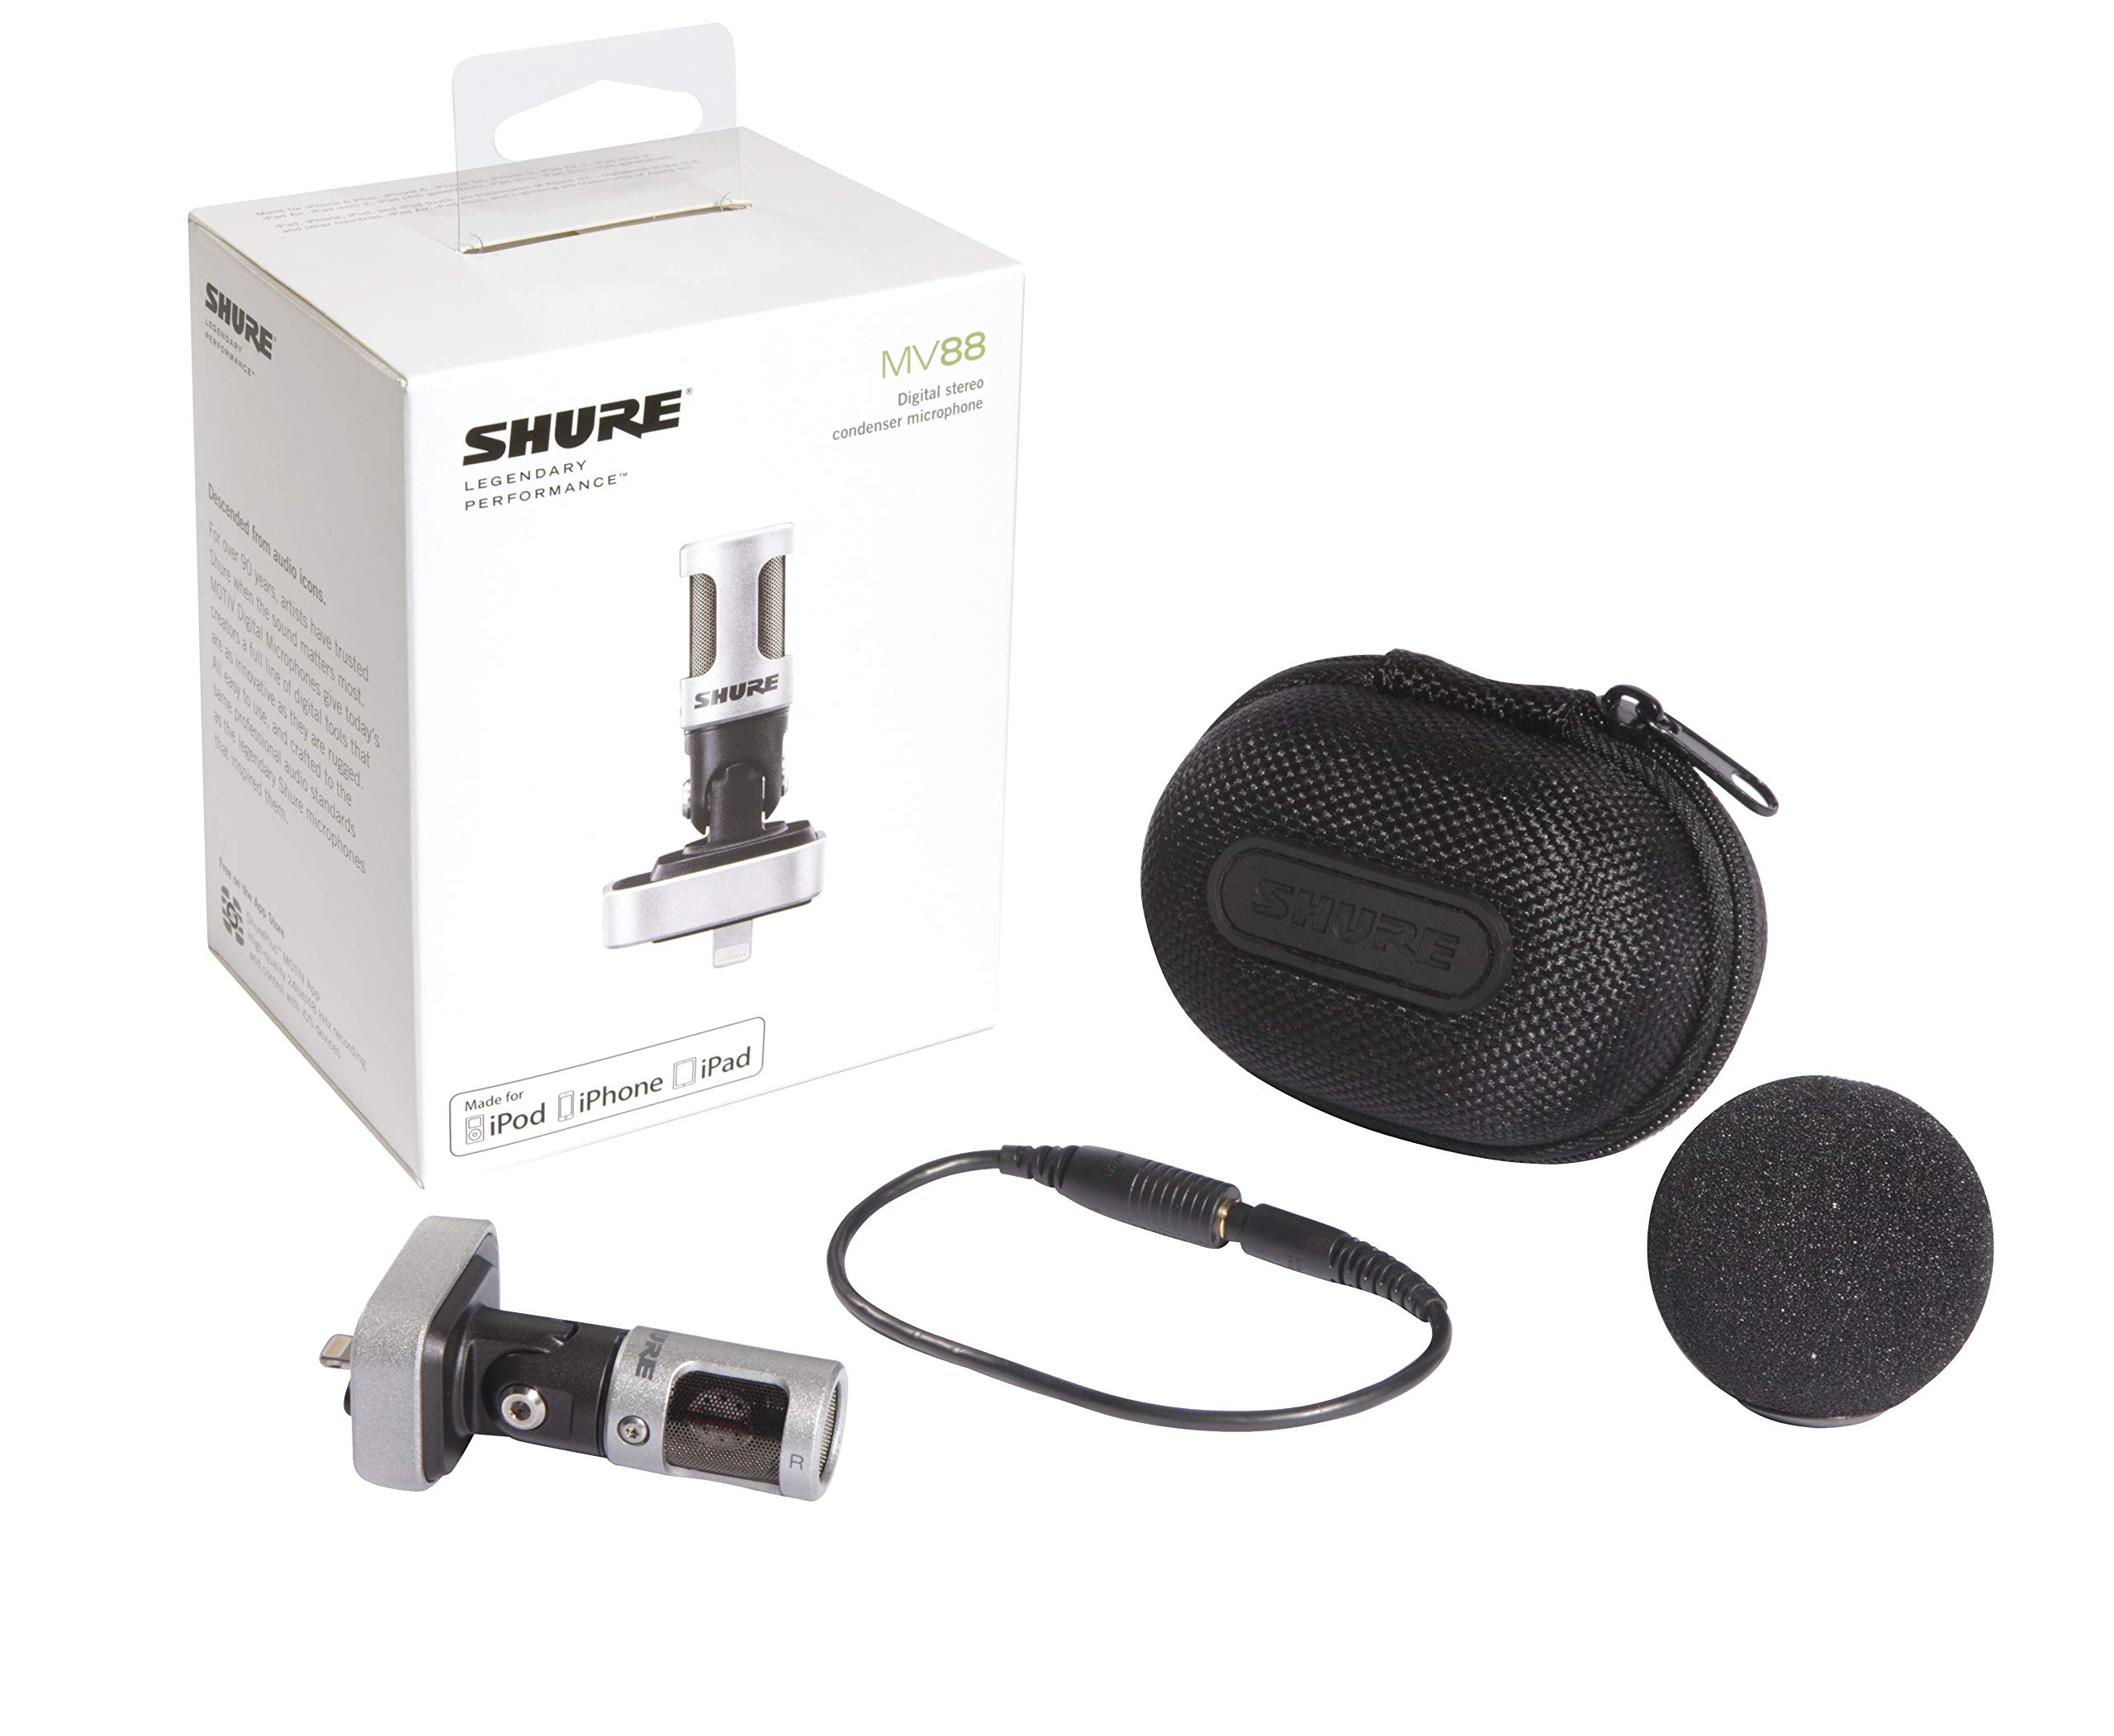 Shure MV88 iOS Digital Stereo Condenser Microphone by Shure (Image #3)